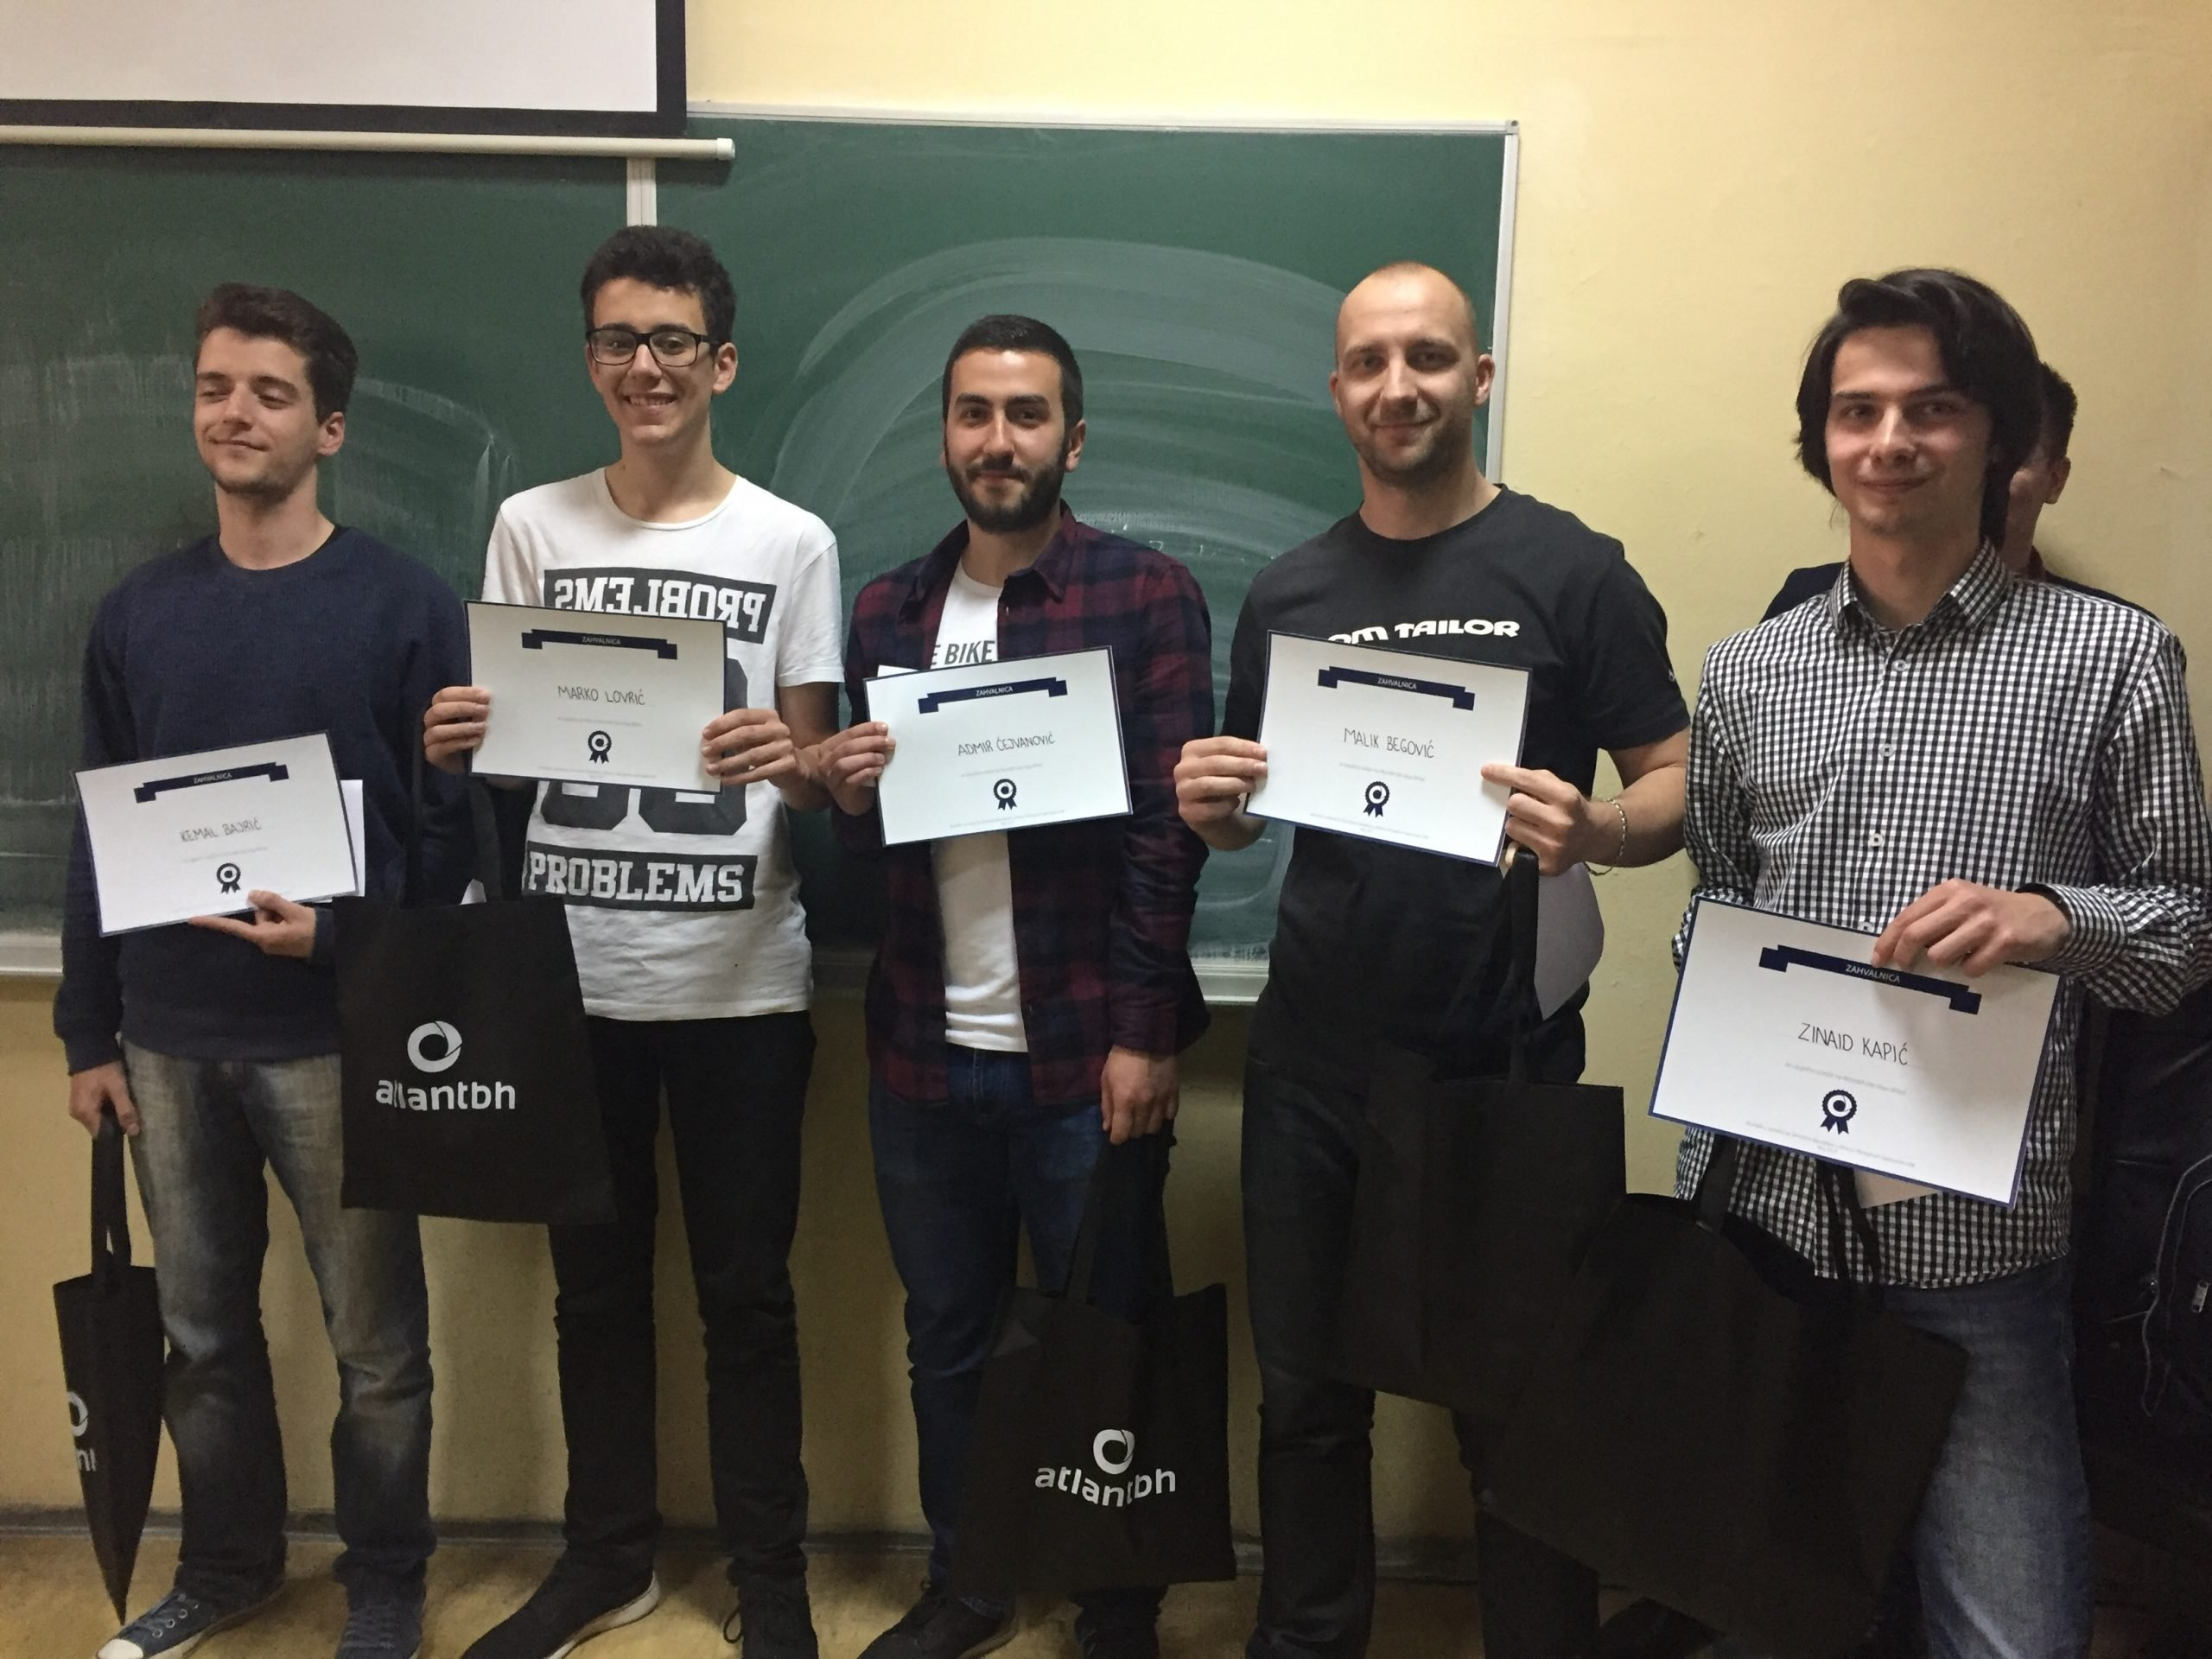 Atlantbh Dev Days successfully held in Bihac